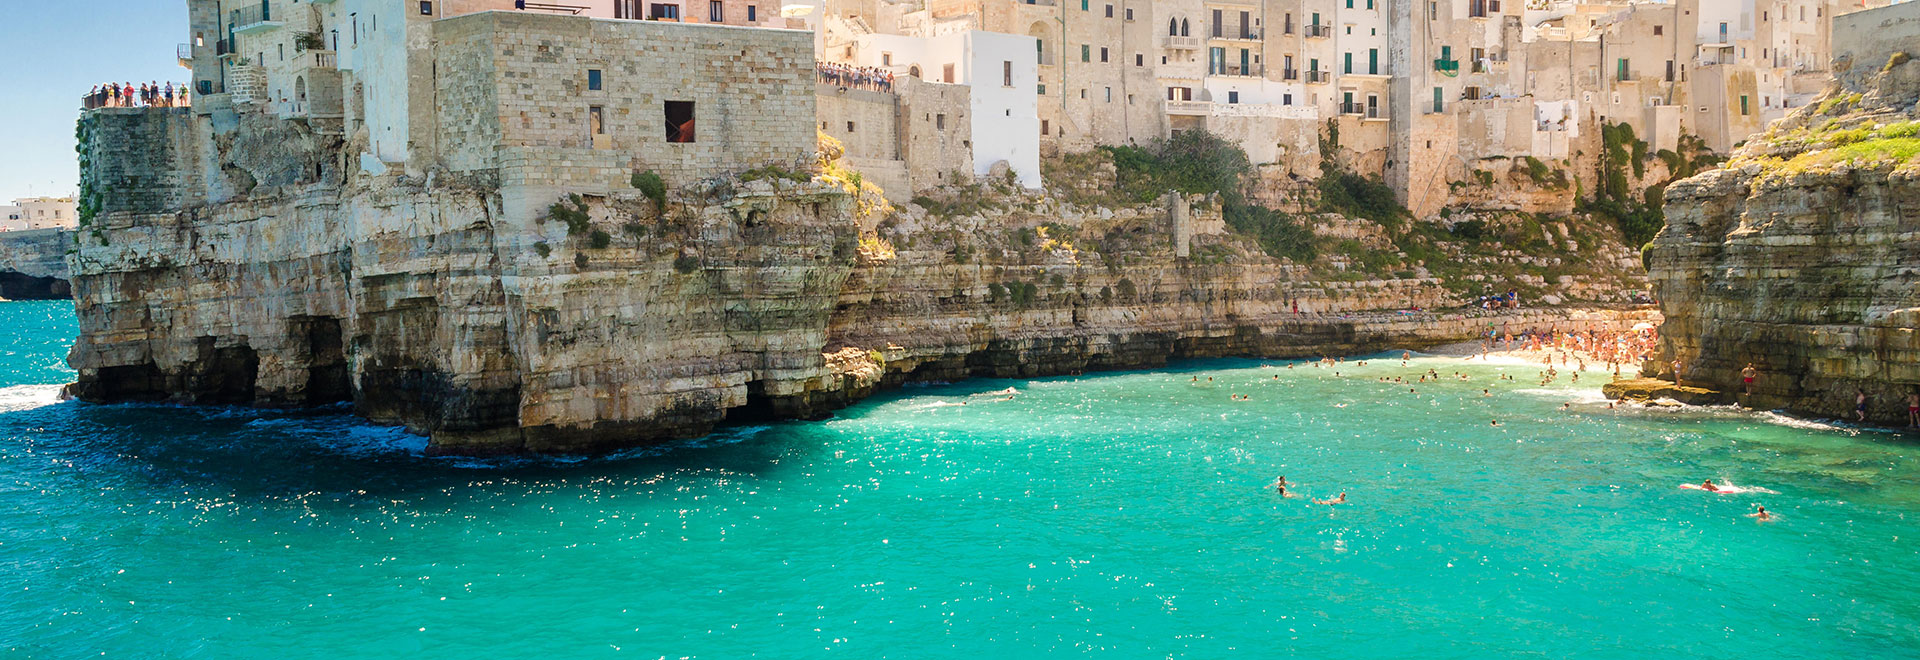 Italy With Pleasure tailor-made custom tours